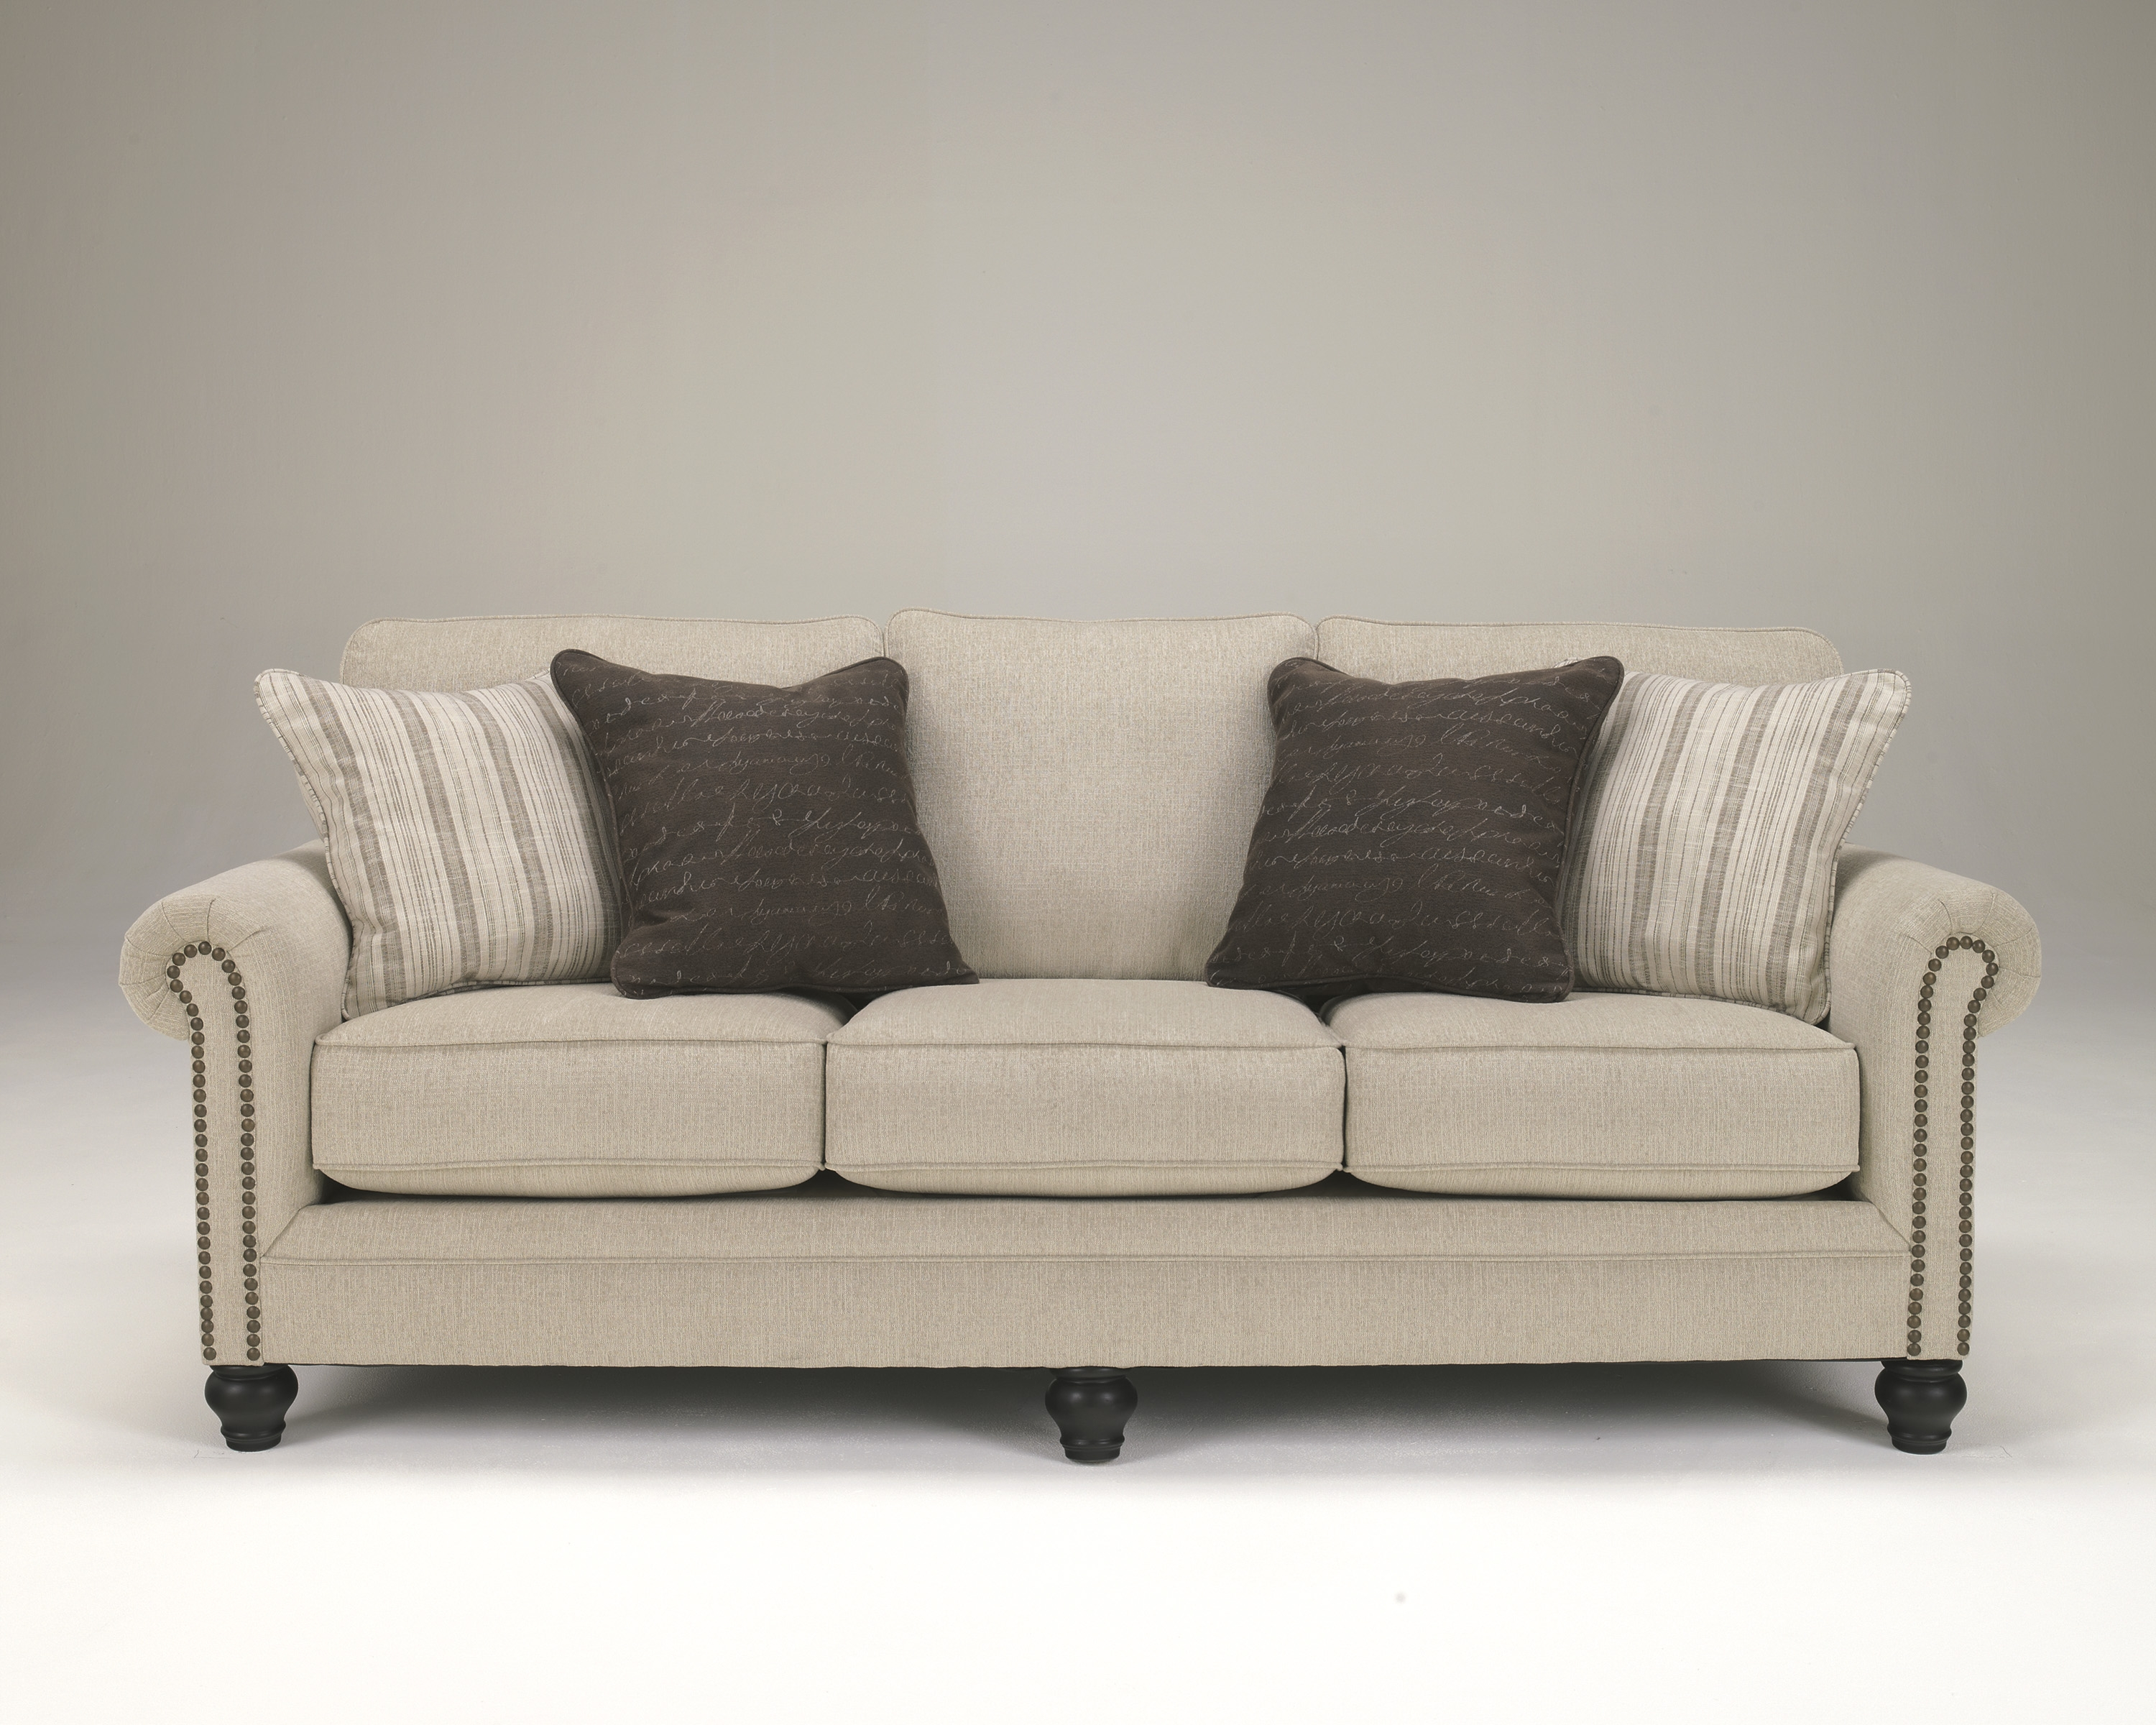 Cheap Ashley Furniture Fabric Sofa Sets In Glendale Ca Inside Elegant Fabric Sofas (Image 3 of 15)